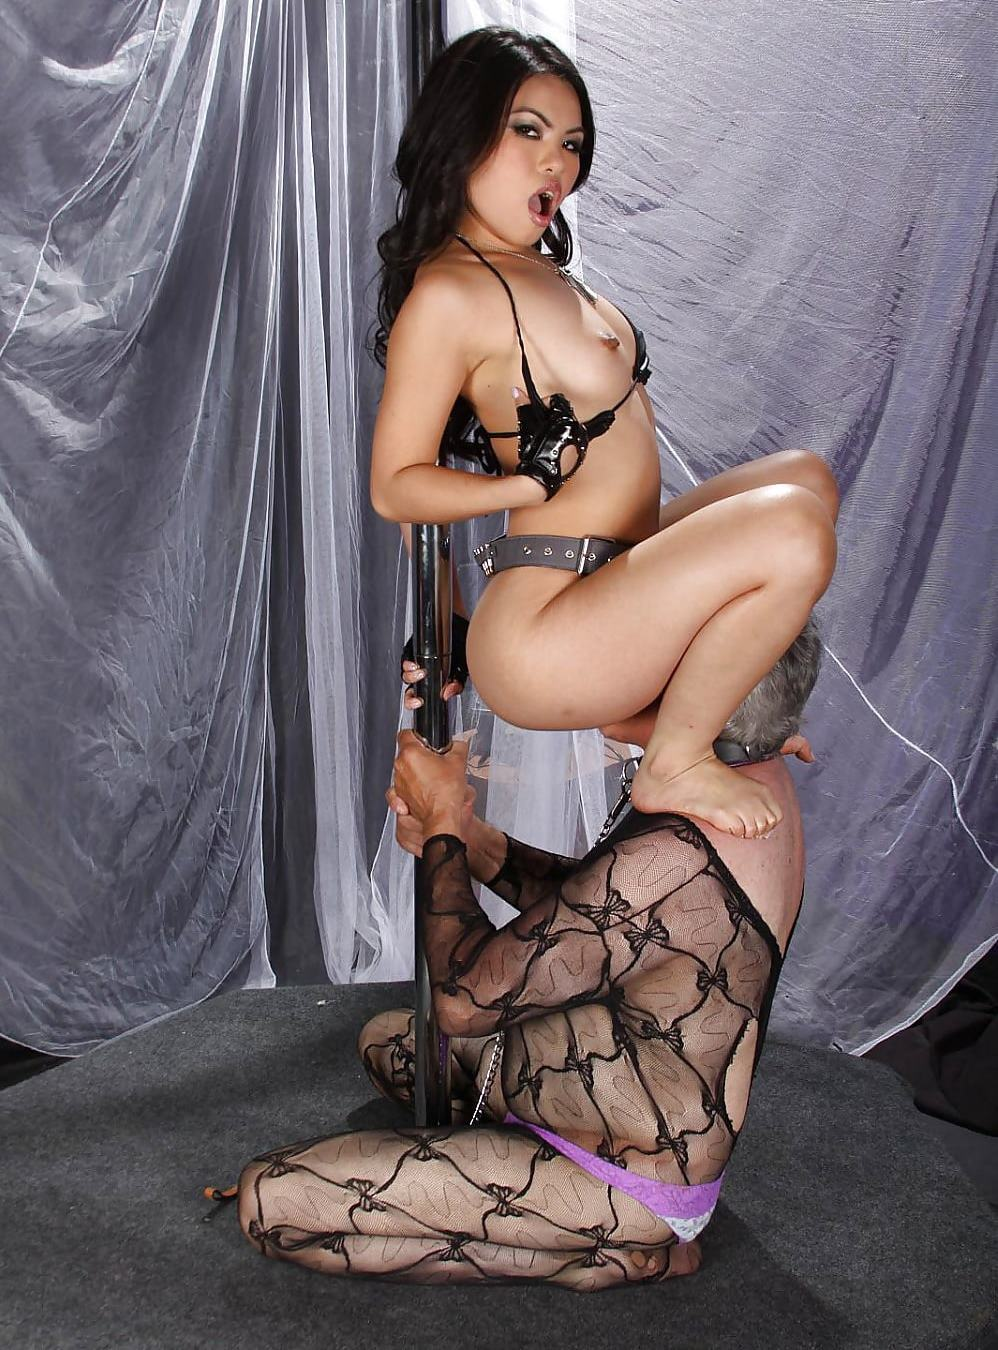 Old Sissy Slut In Women's Clothing Knelt Before Young Asian Mistress For Pussy Licking - Feminization Femdom